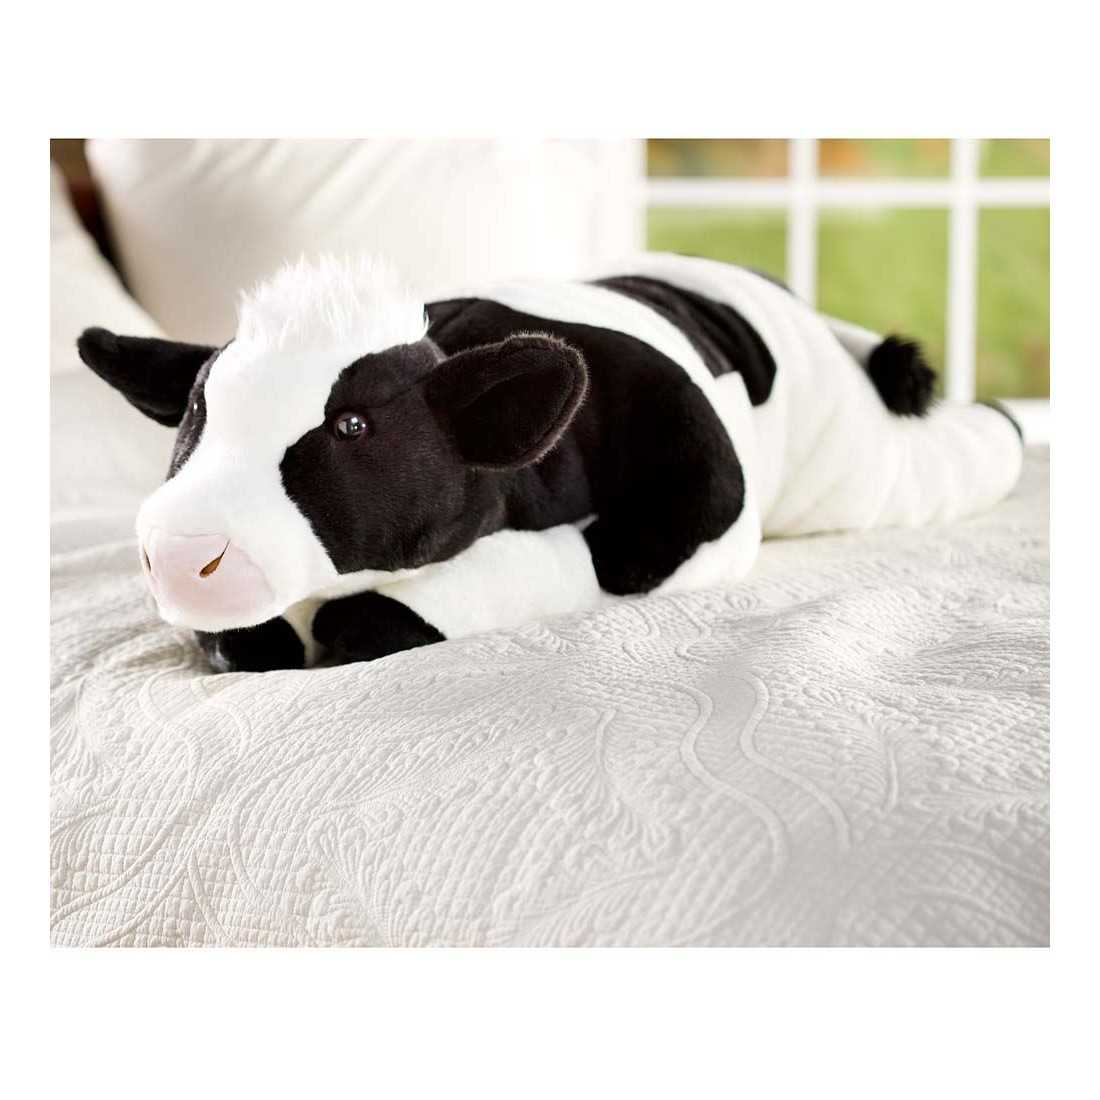 cuddly-cow-body-pillow-90269